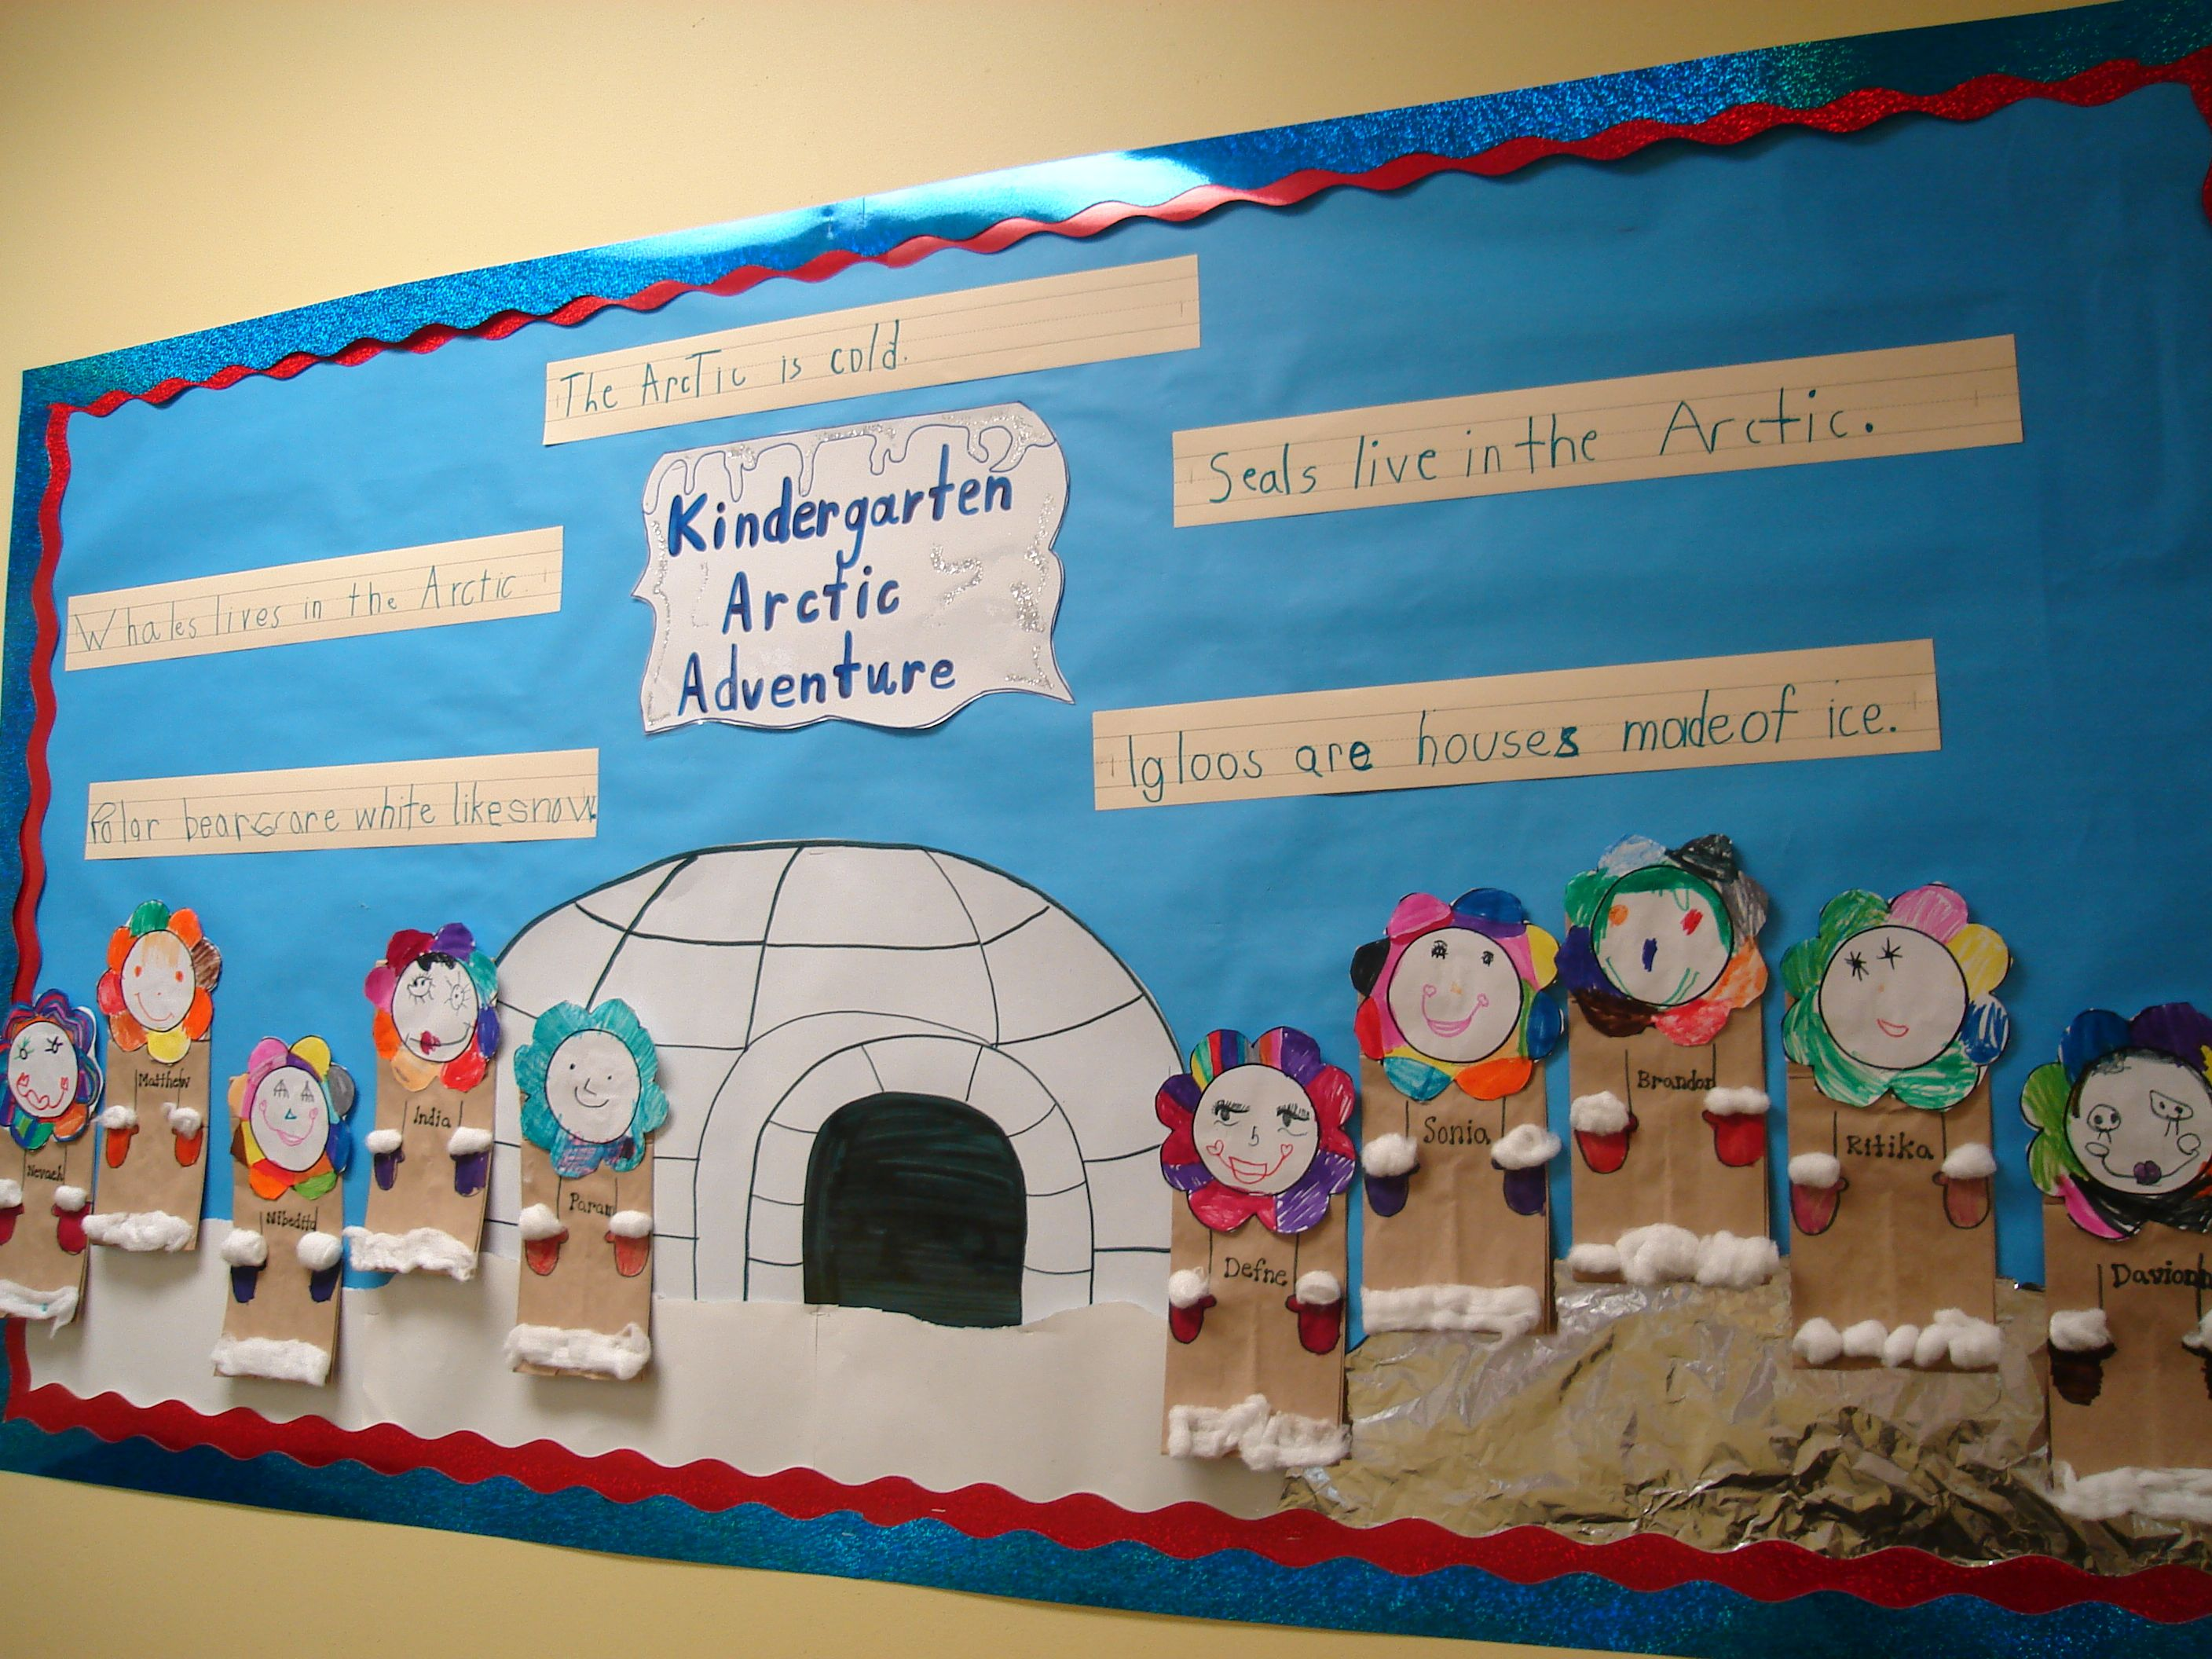 Winter bulletin boards ideas pinterest -  Arctic Adventure Is A Cool Title For A Winter Bulletin Board Display That Includes An Igloo And Children Creating Characters Bundled Warm In Winter